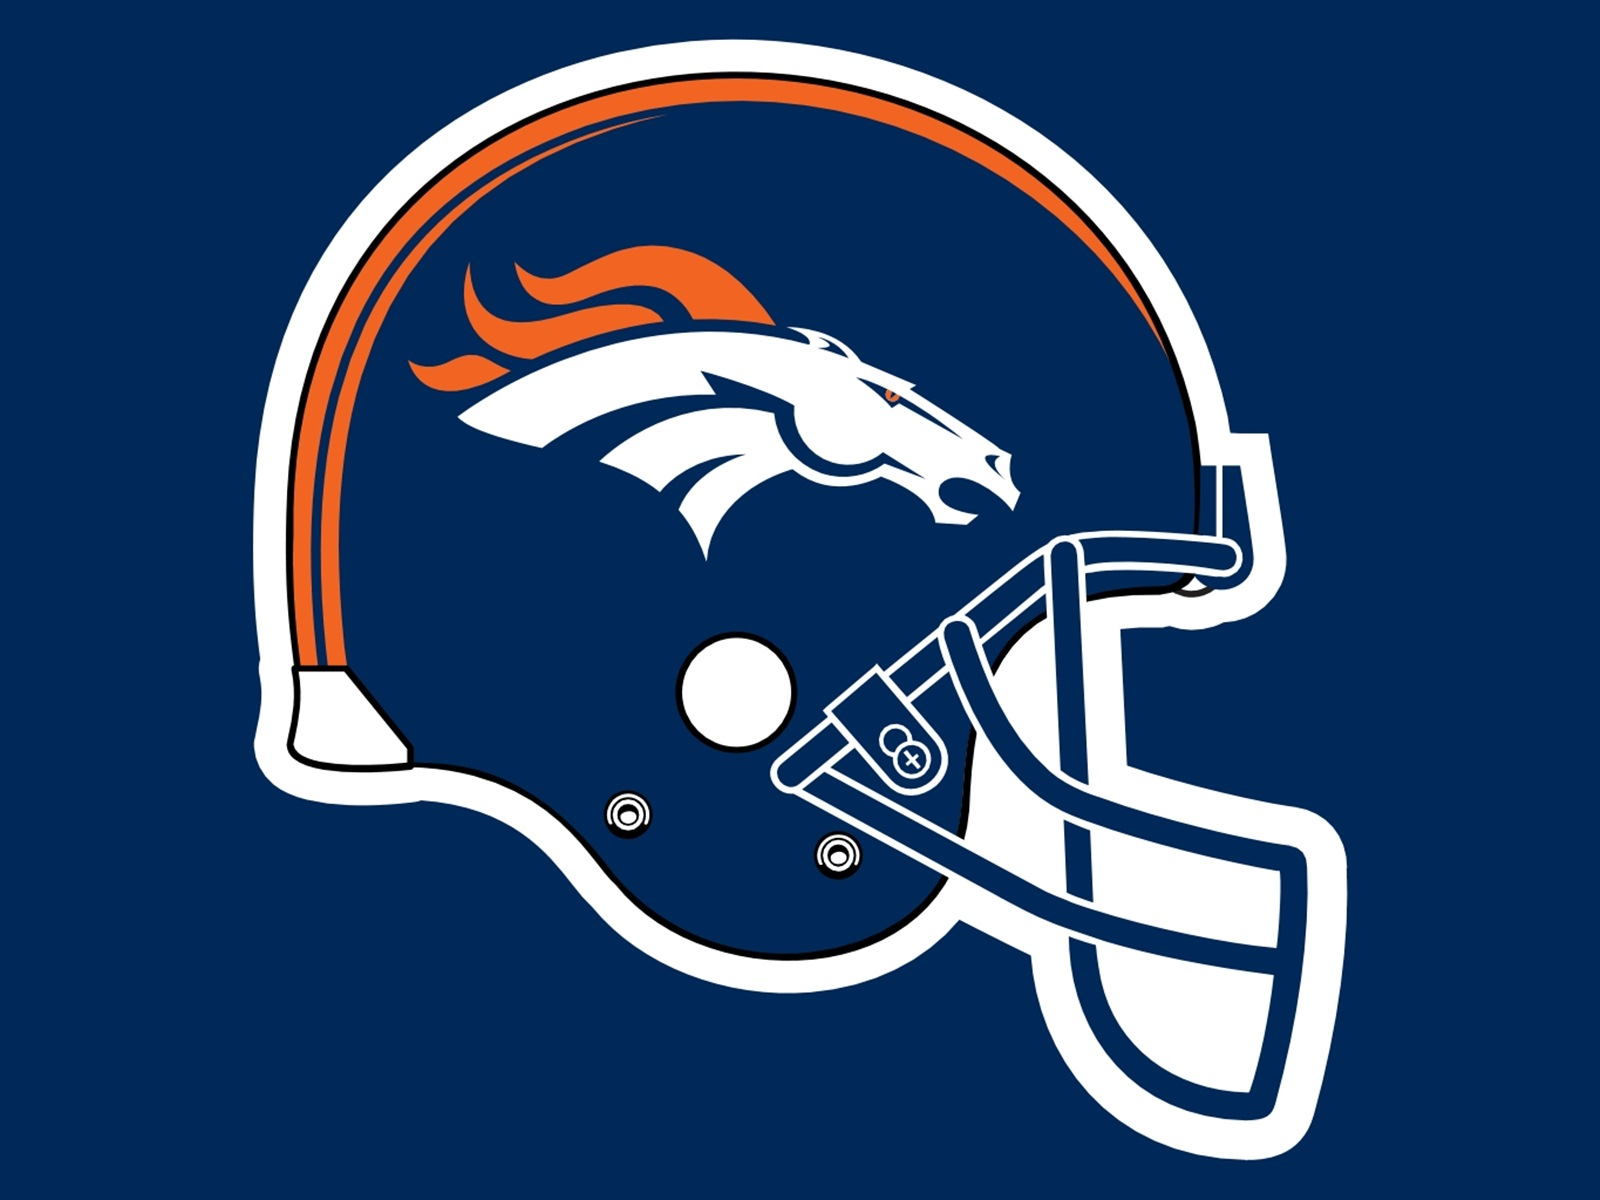 98b1d93063df1c7e64855f7d6fdbd56a along with broncos logo coloring pages 1 on broncos logo coloring pages further broncos logo coloring pages 2 on broncos logo coloring pages likewise broncos logo coloring pages 3 on broncos logo coloring pages including new york giants logo coloring pages on broncos logo coloring pages